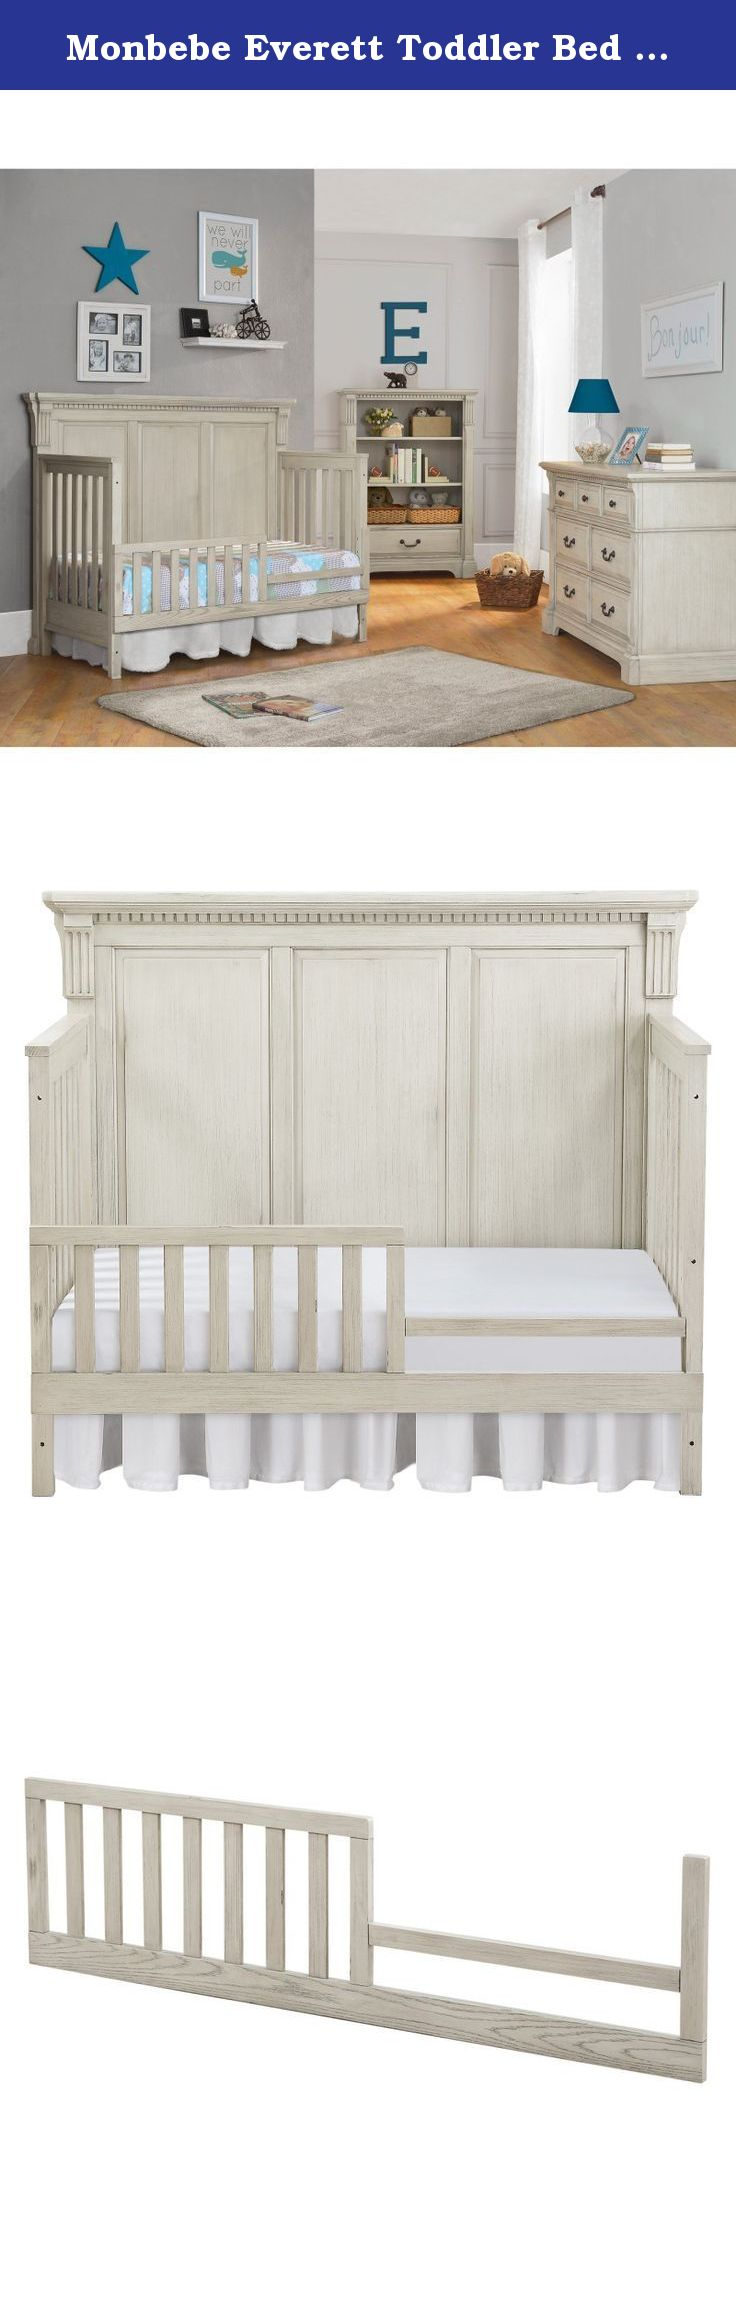 Your Baby Might Be Ready To Give Up His Or Her Crib But With The Monbebe Everett Toddler Bed Guard Rail